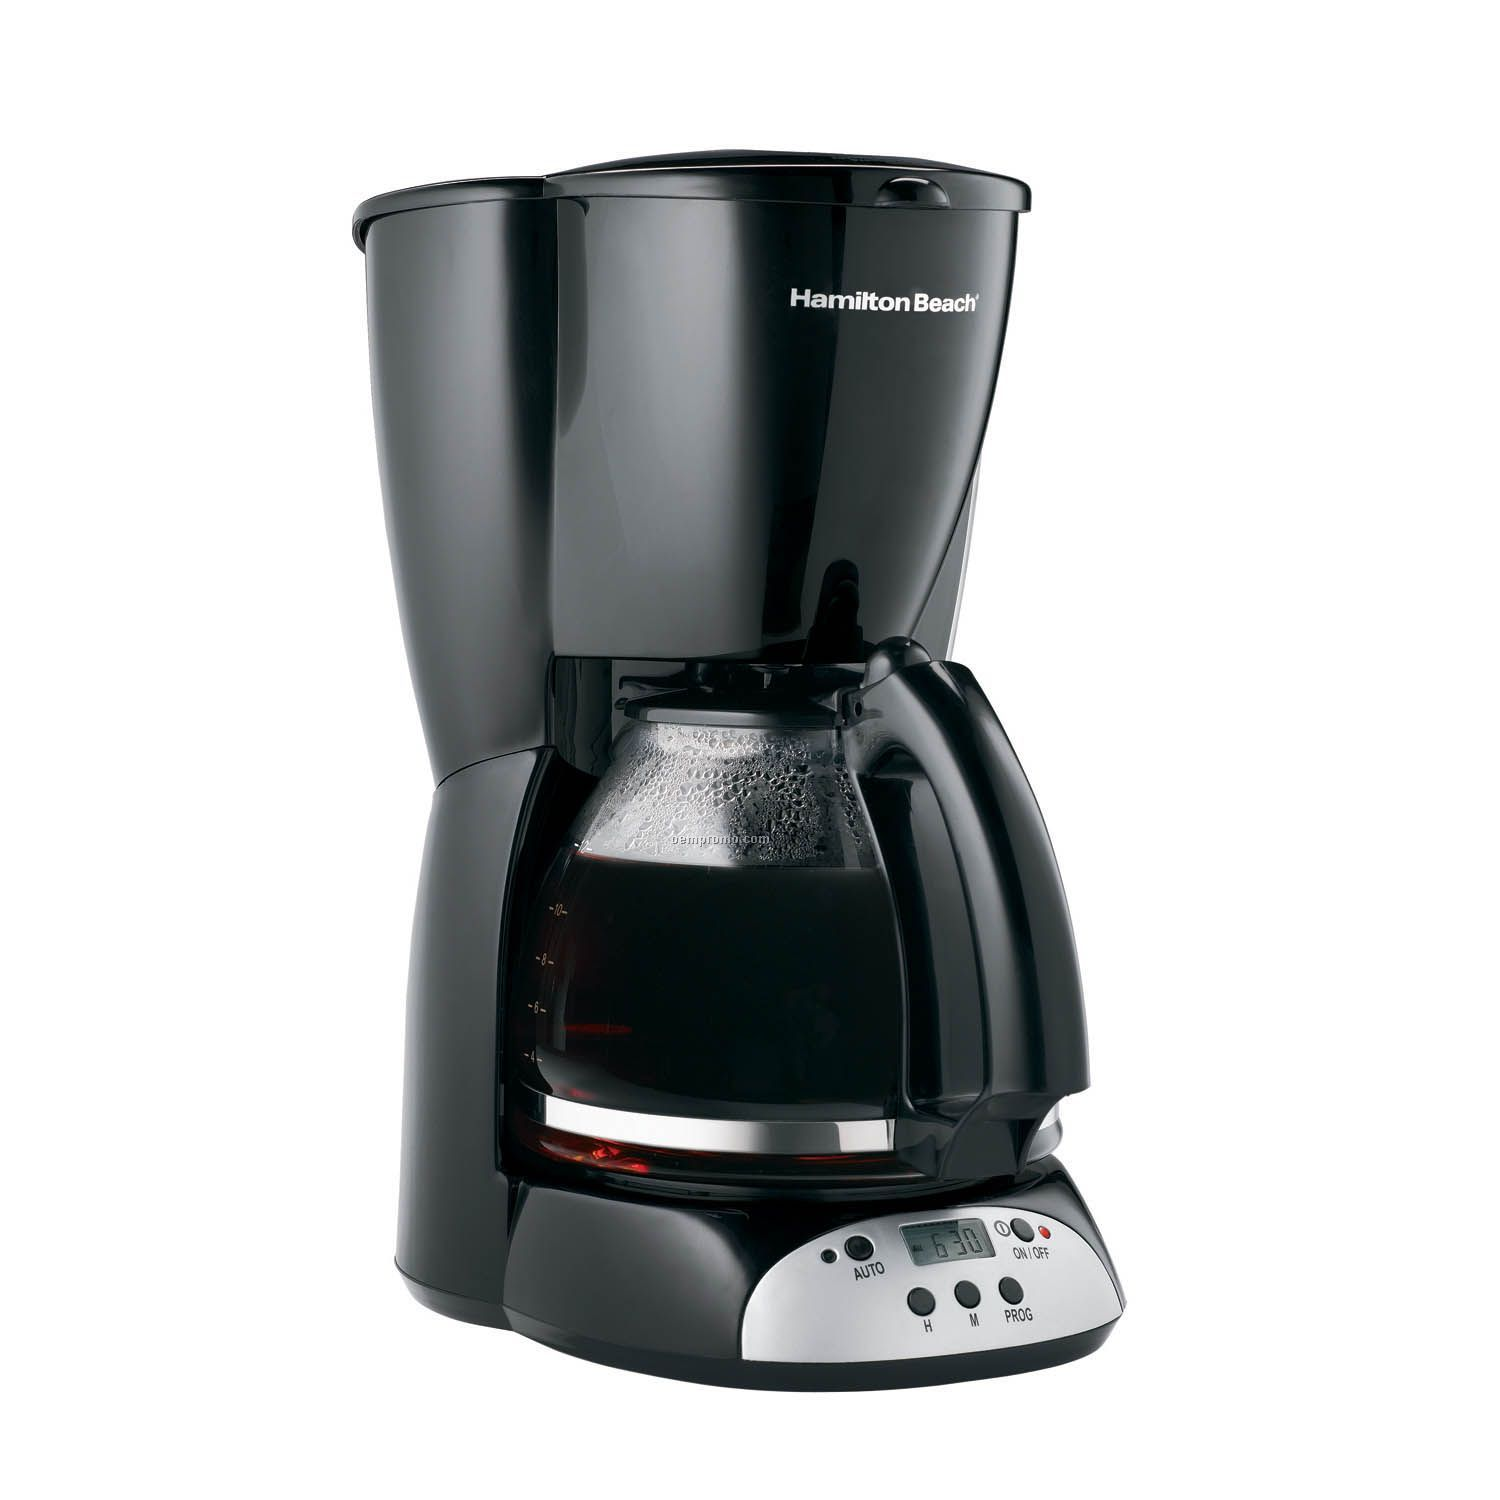 Hamilton Beach 12 Cup Digital Coffeemaker